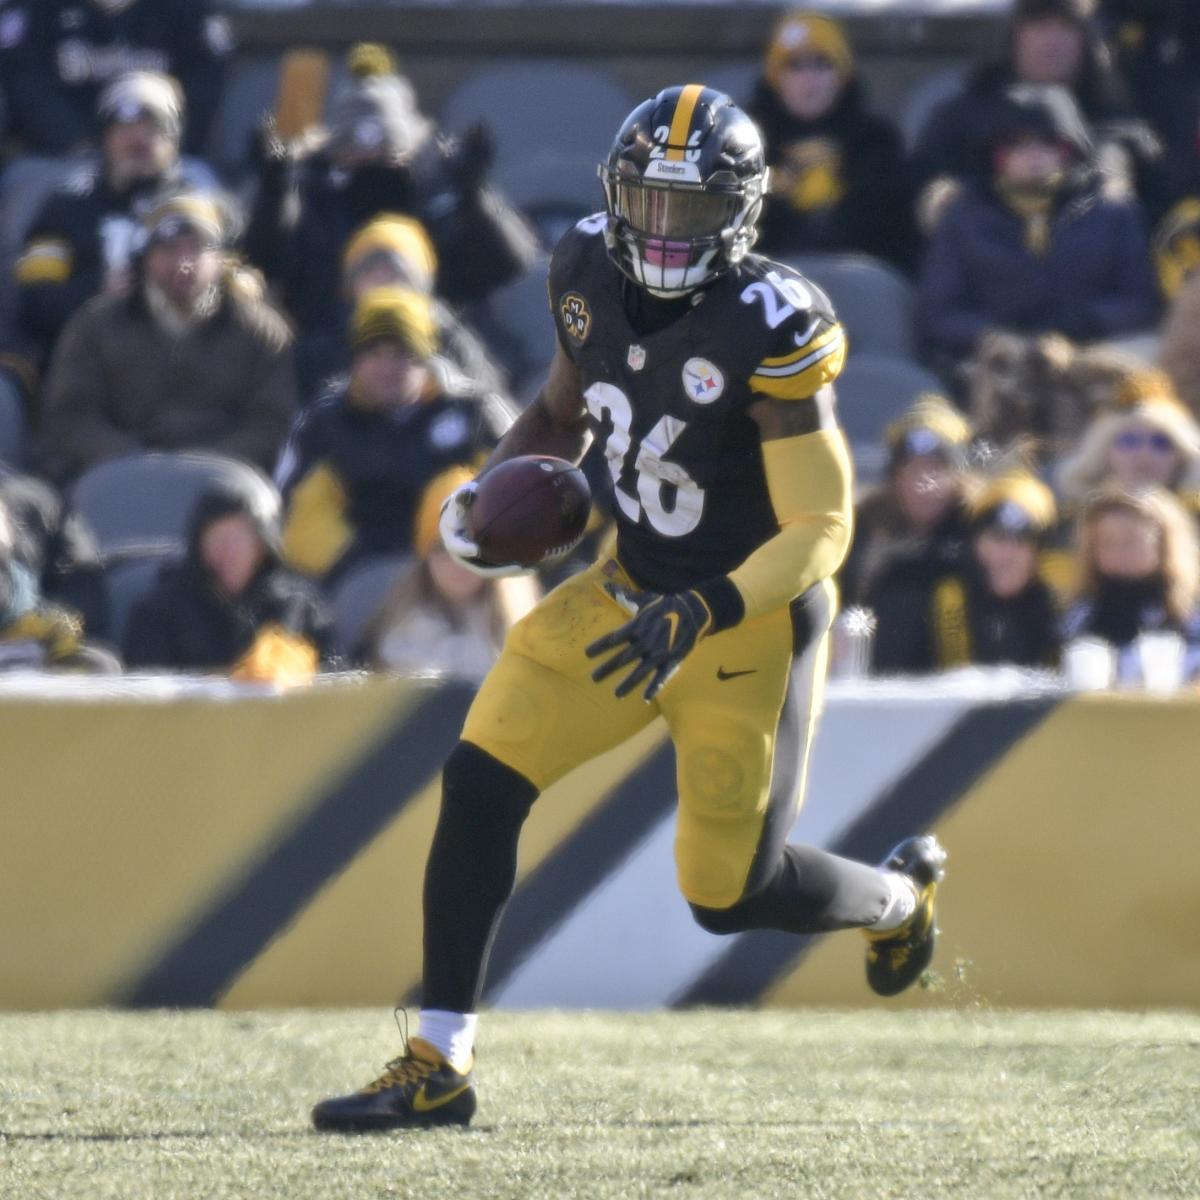 Report: LeVeon Bell's Agent Didn't Know RB Eligible for QB Franchise Tag in 2019